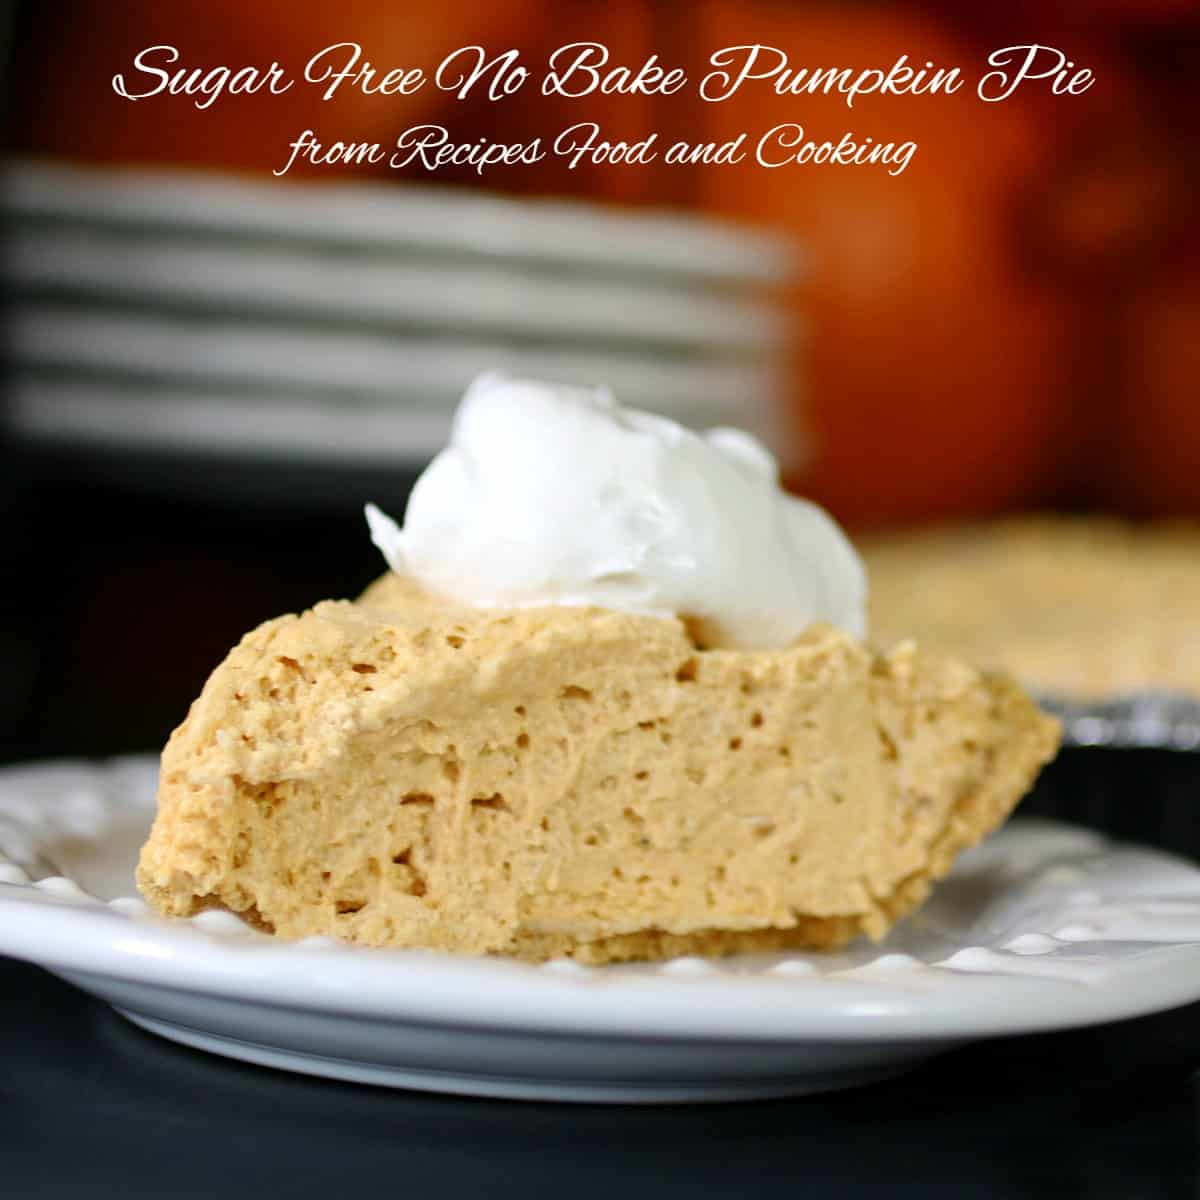 Sugar free pumpkin pie no bake